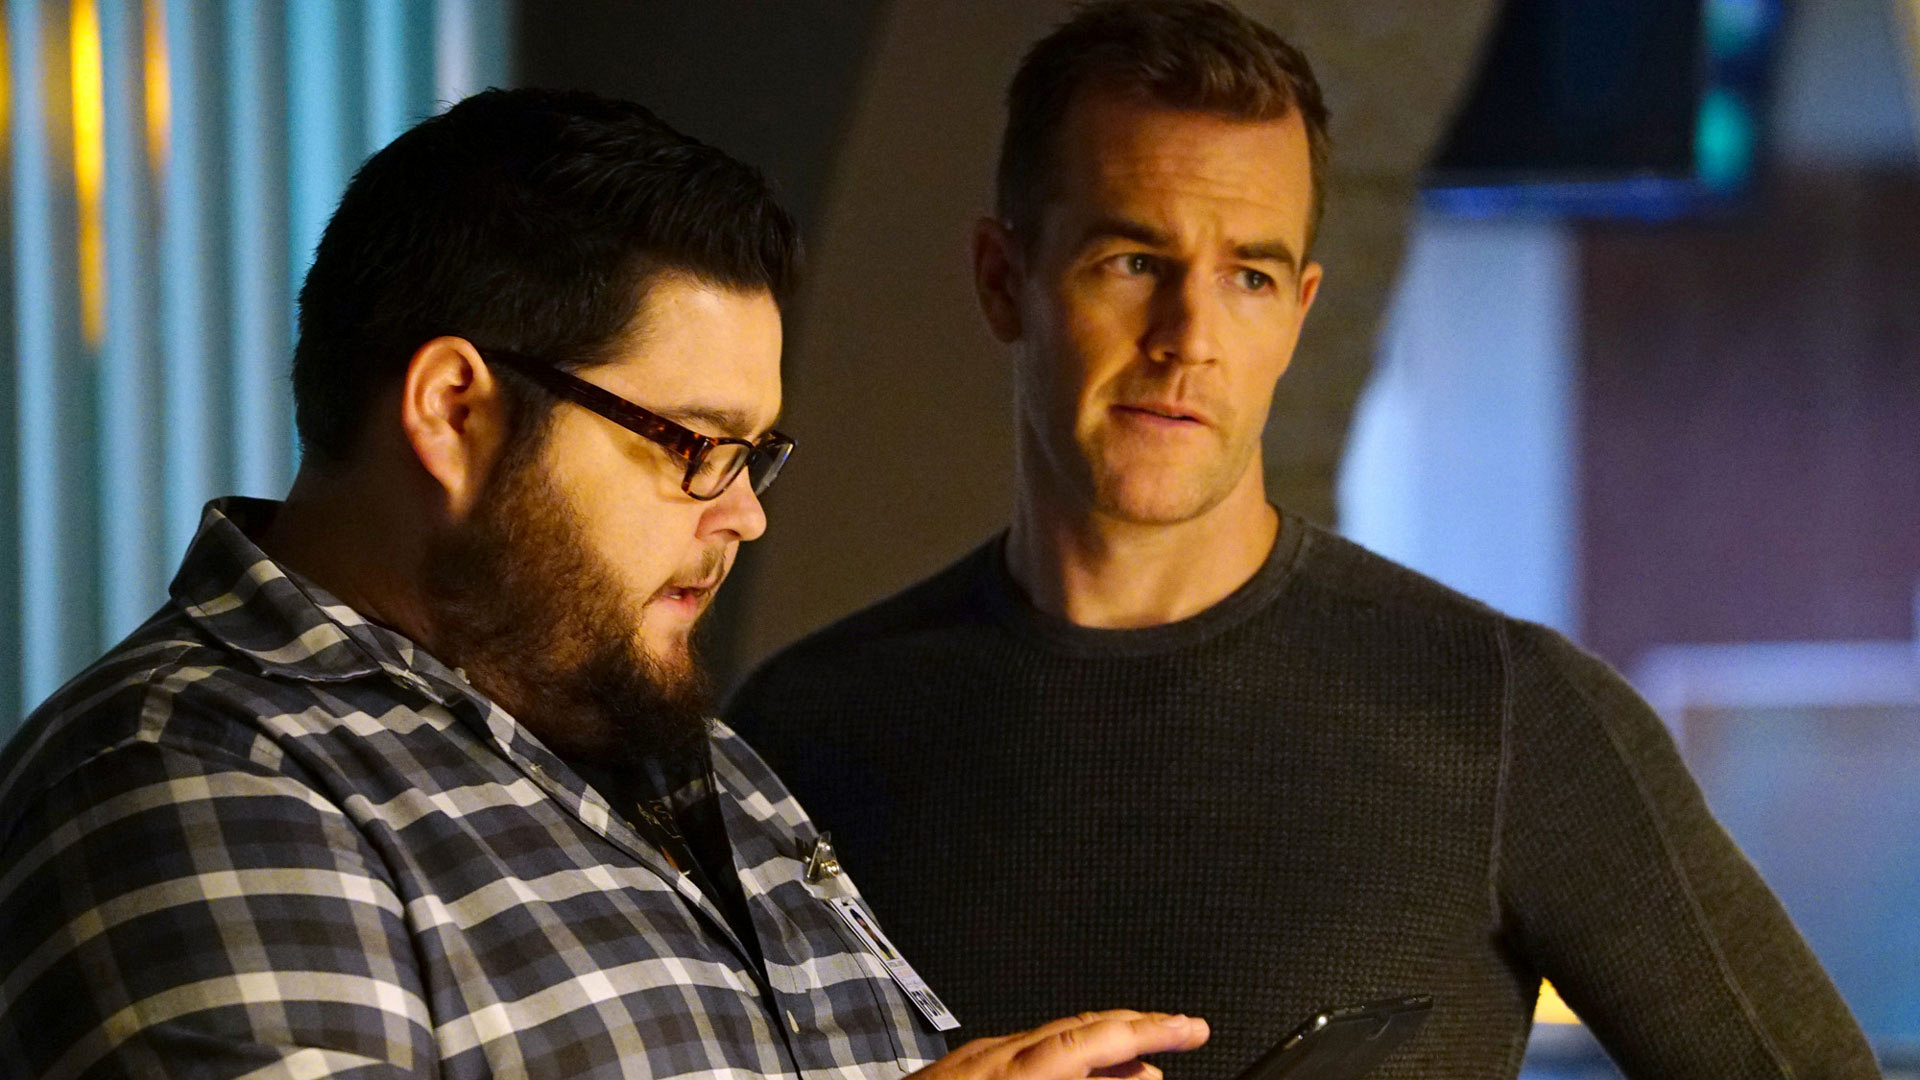 Charley Koontz as Agent Daniel Krumitz and James Van Der Beek as Agent Elijah Mundo